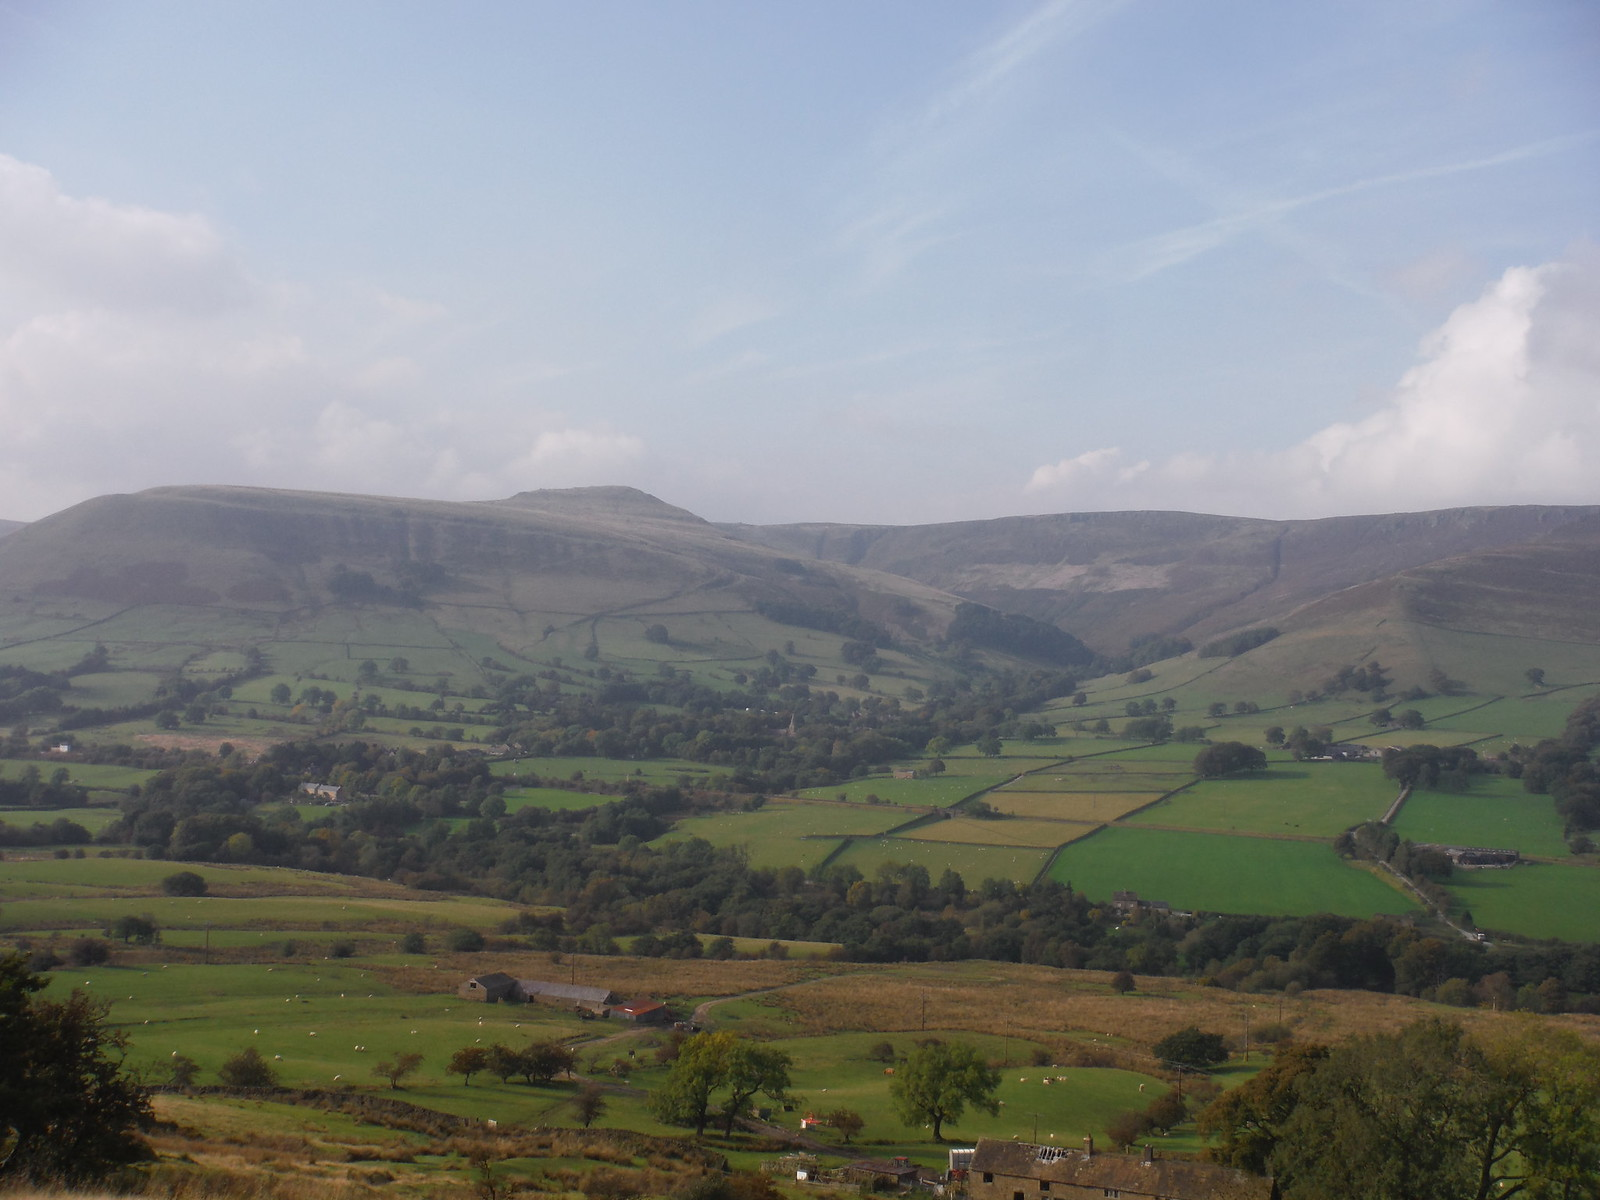 Grindbrook Clough and Grindslow Knoll, from Coffin Road up to Hollins Cross SWC Walk 303 - Edale Circular (via Kinder Scout and Mam Tor)